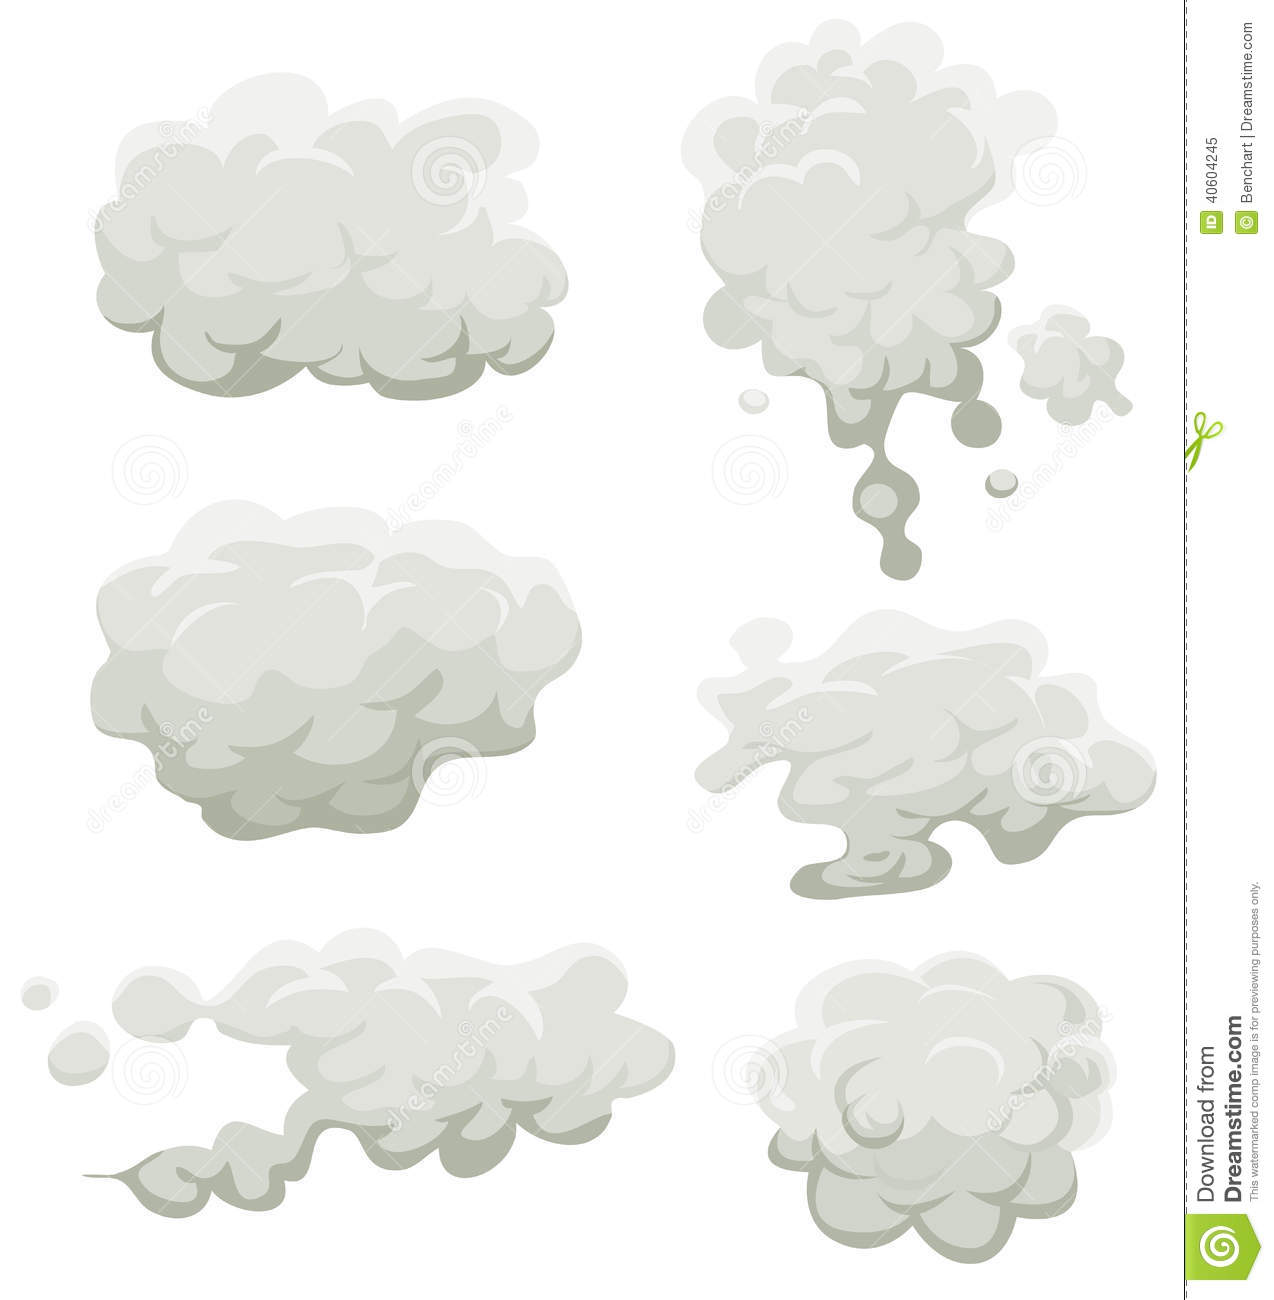 Fog Cartoon Clipart.